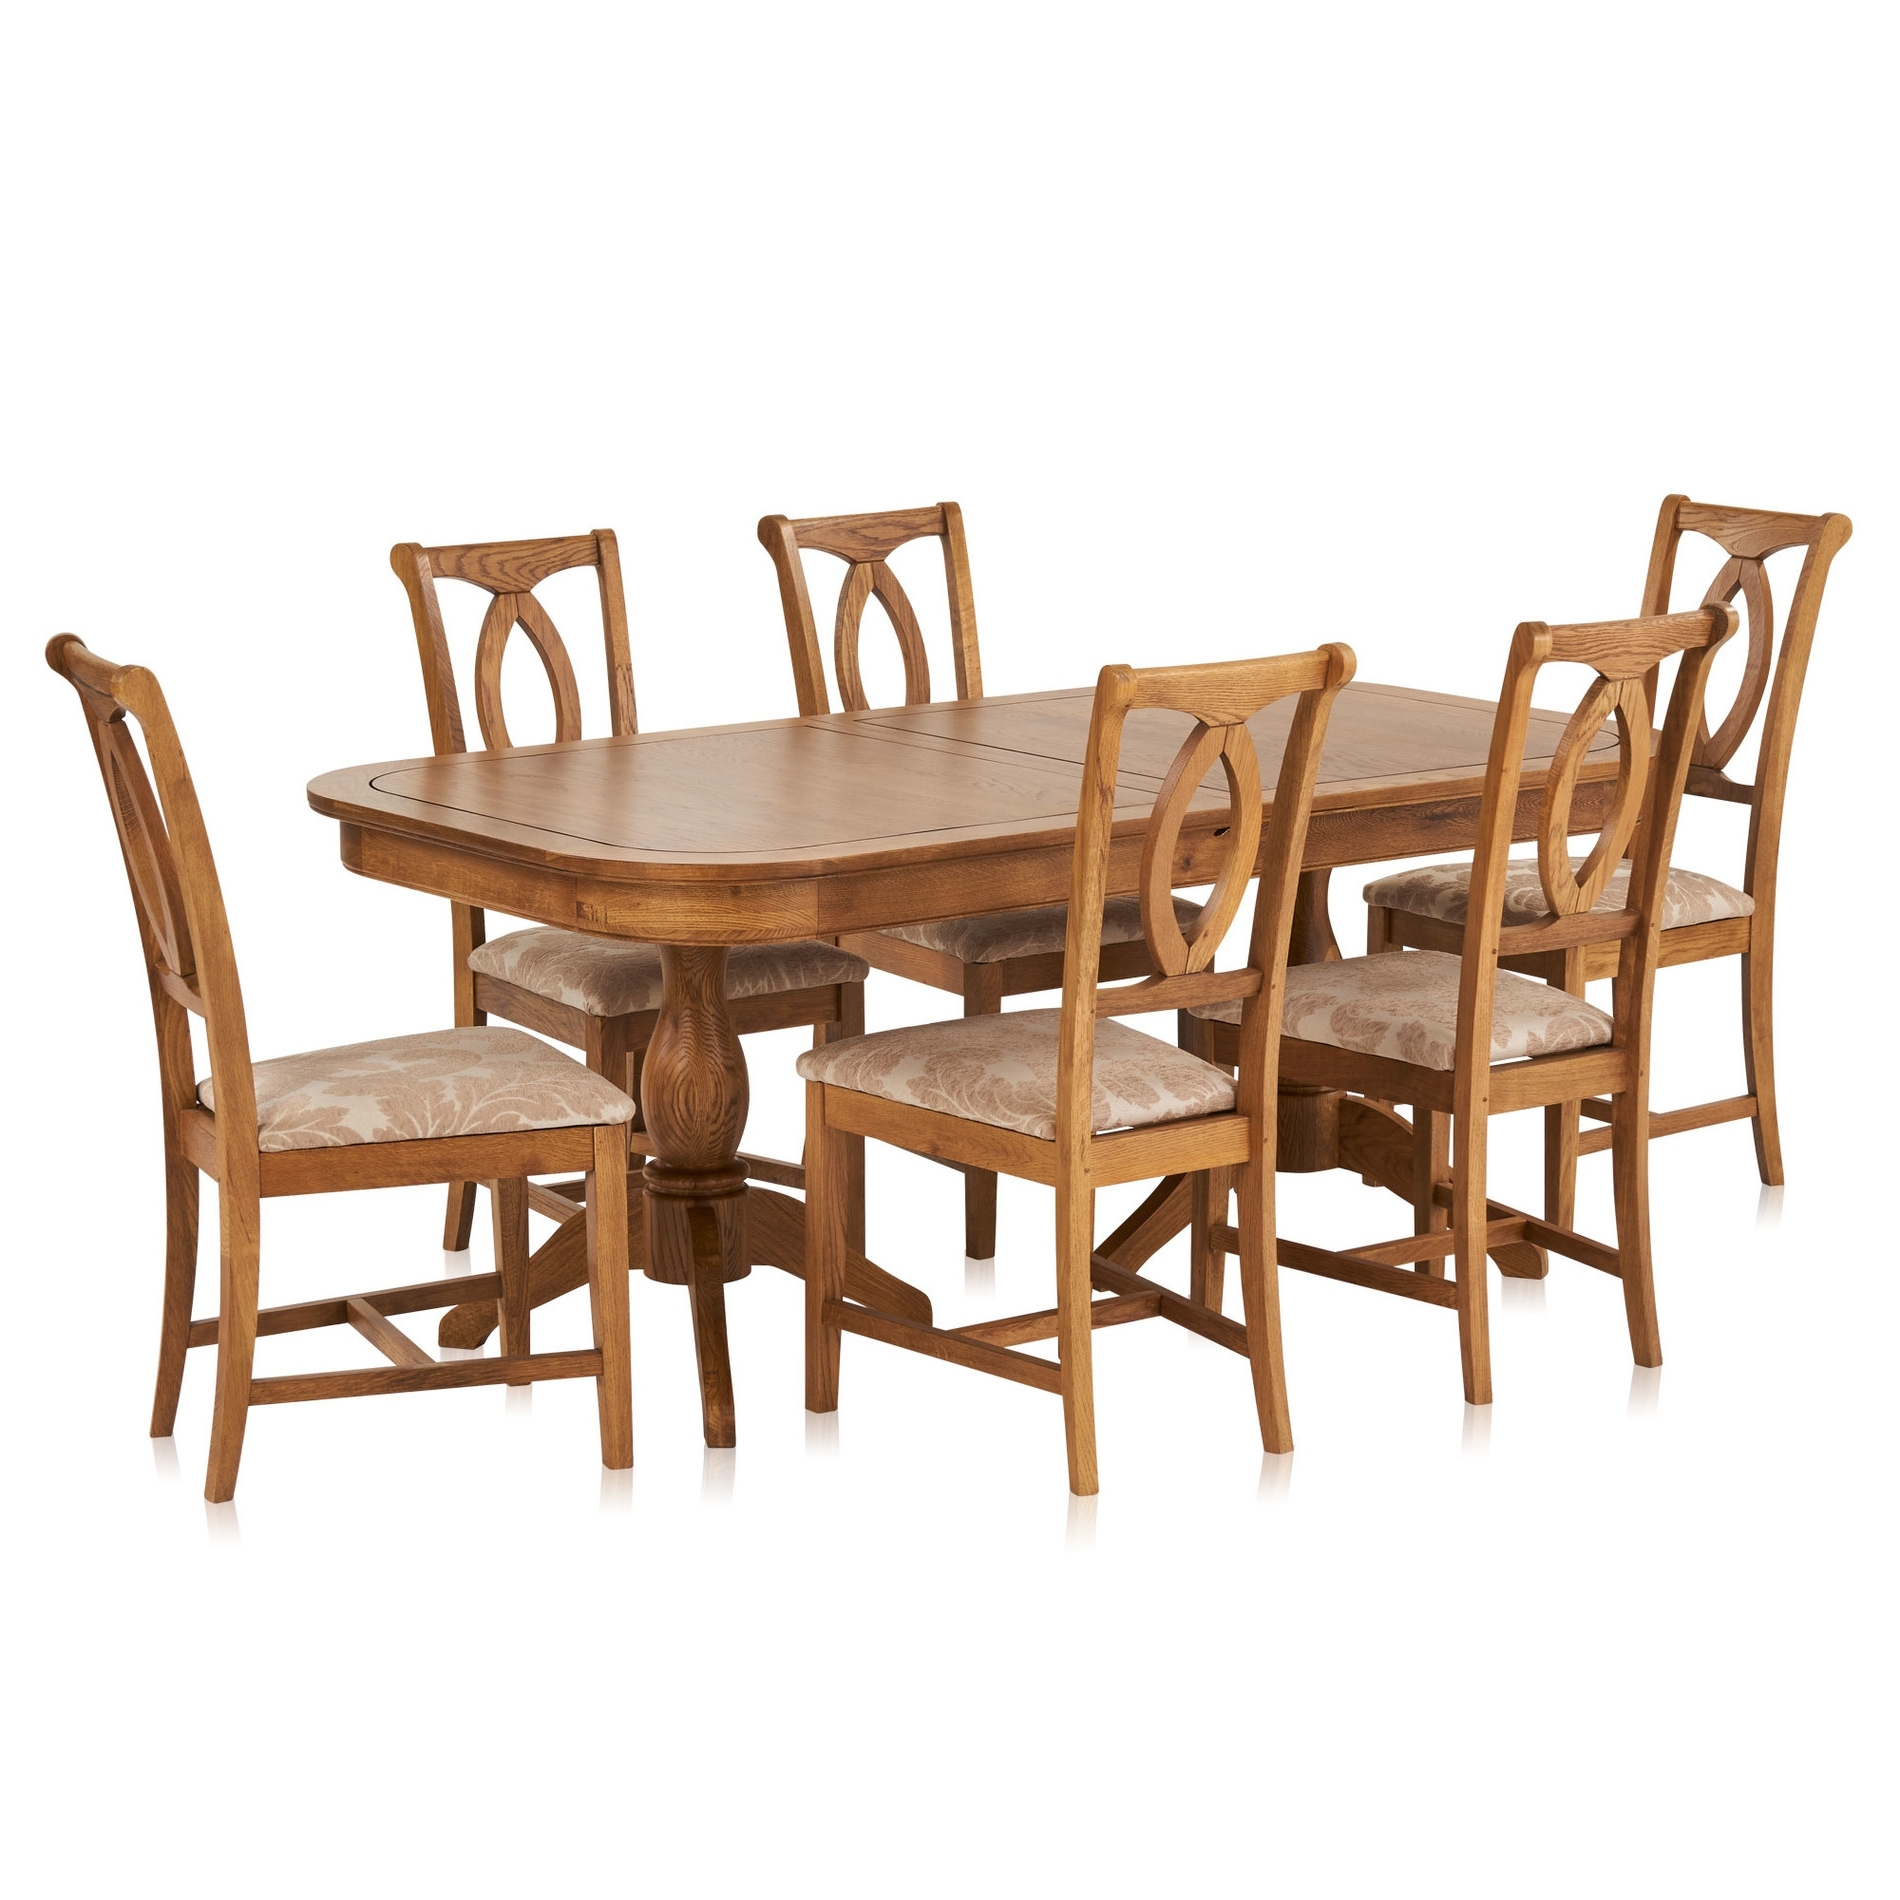 Crawford 6 Piece Rectangle Dining Sets Regarding 2017 Crawford Extendable Dining Table And 6 Beige Chairs (Gallery 12 of 25)